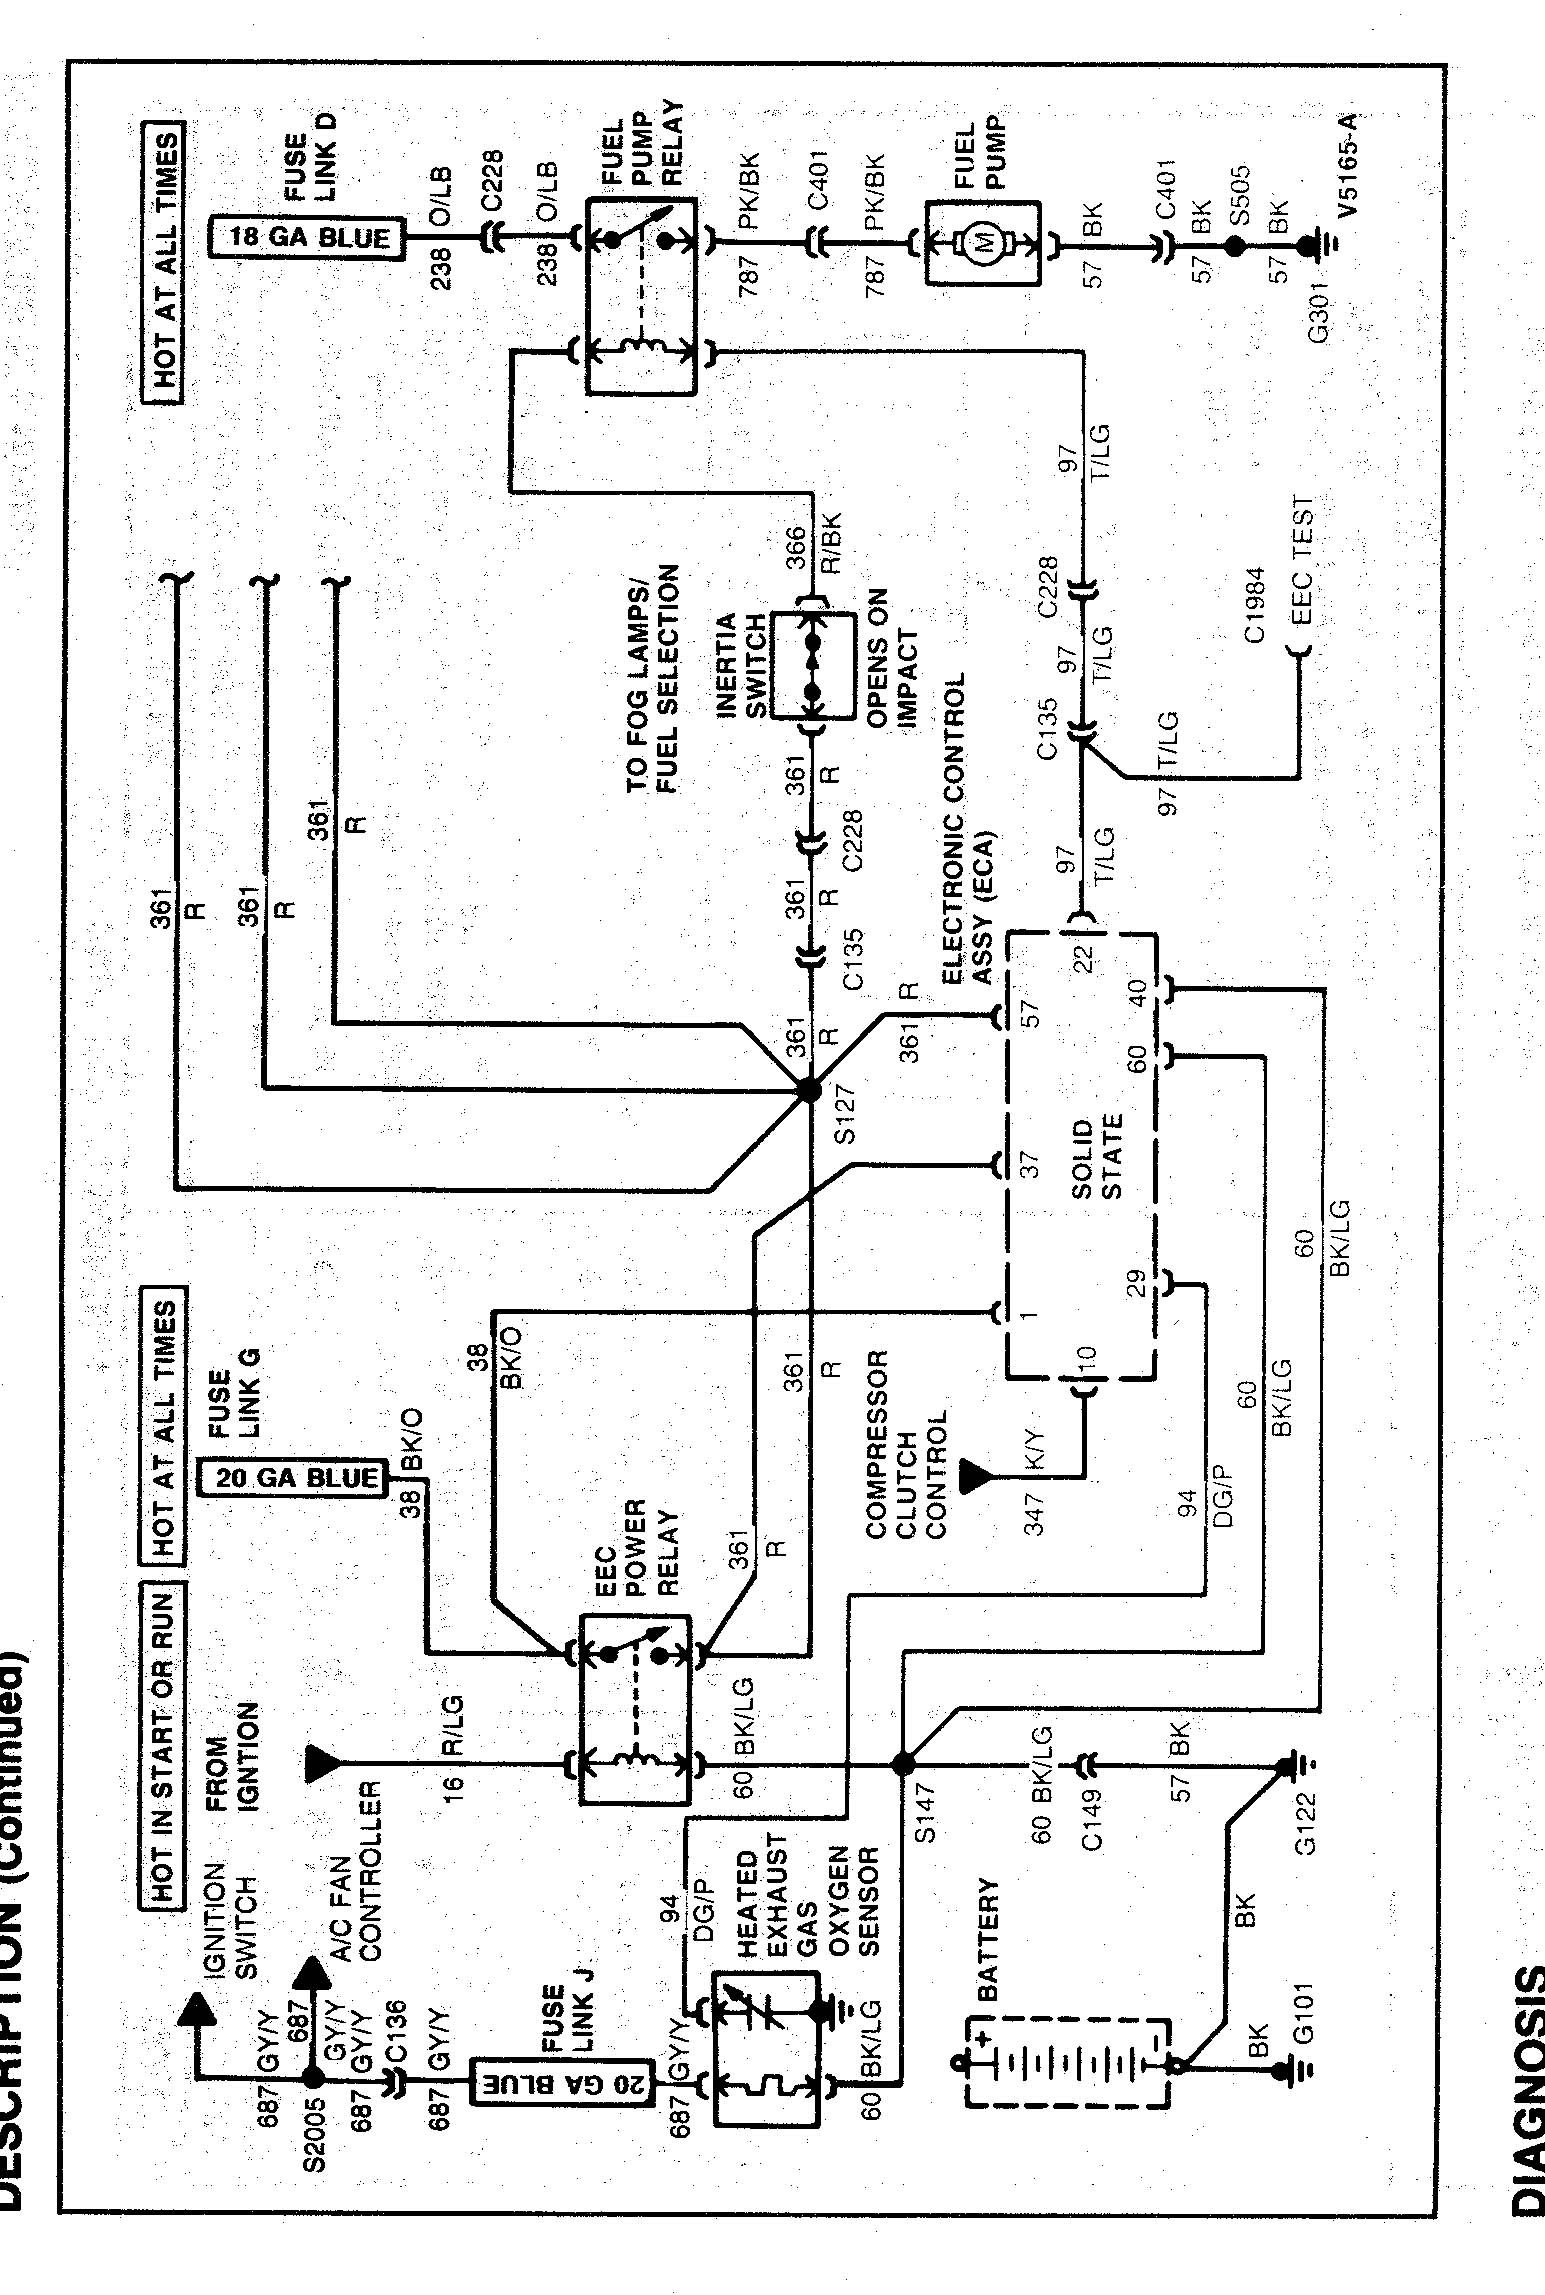 hight resolution of eec relay wire